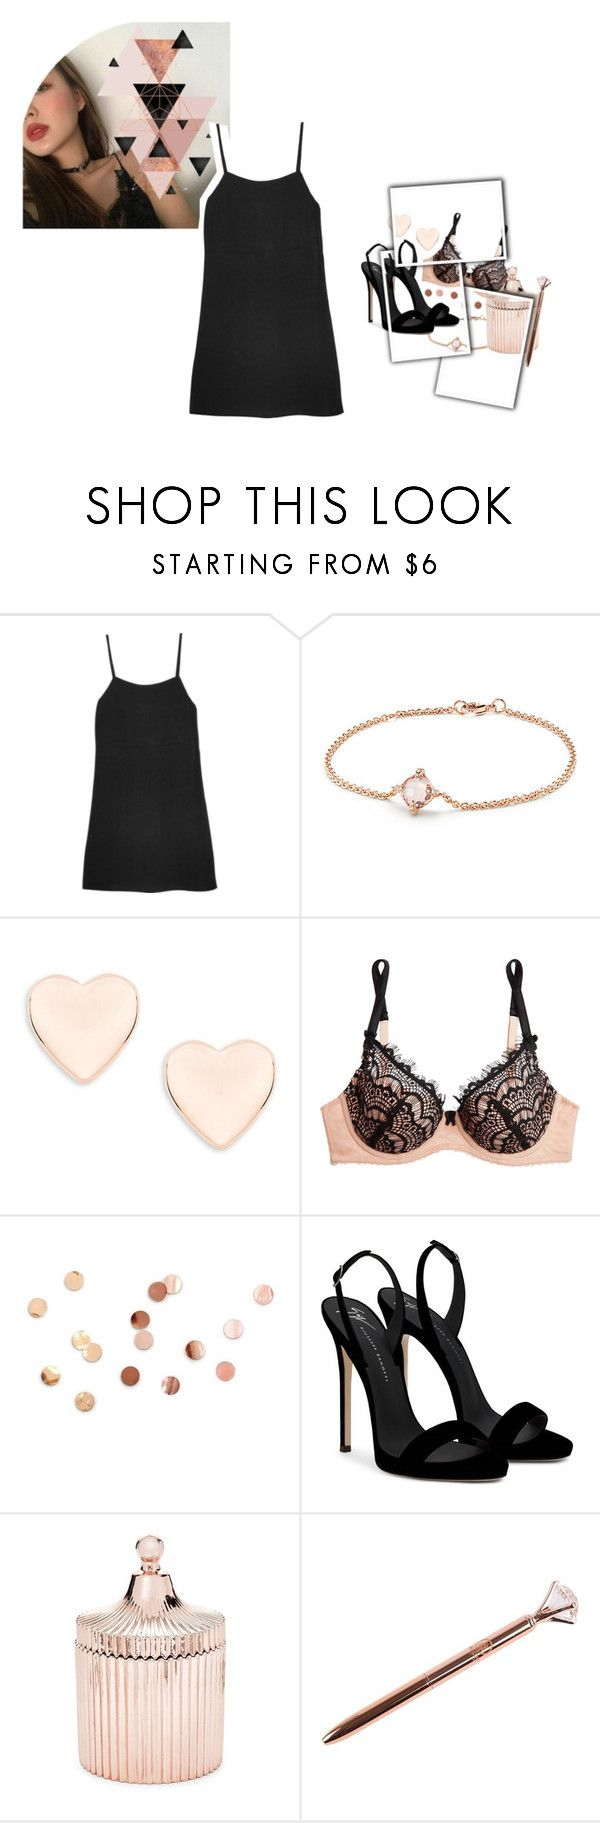 """""""party night ¡"""" by bruhkyu ❤ liked on Polyvore featuring Reformation, David Yurman, Ted Baker, Mimi Holliday by Damaris, Umbra, Giuseppe Zanotti and Saks Fifth Avenue"""